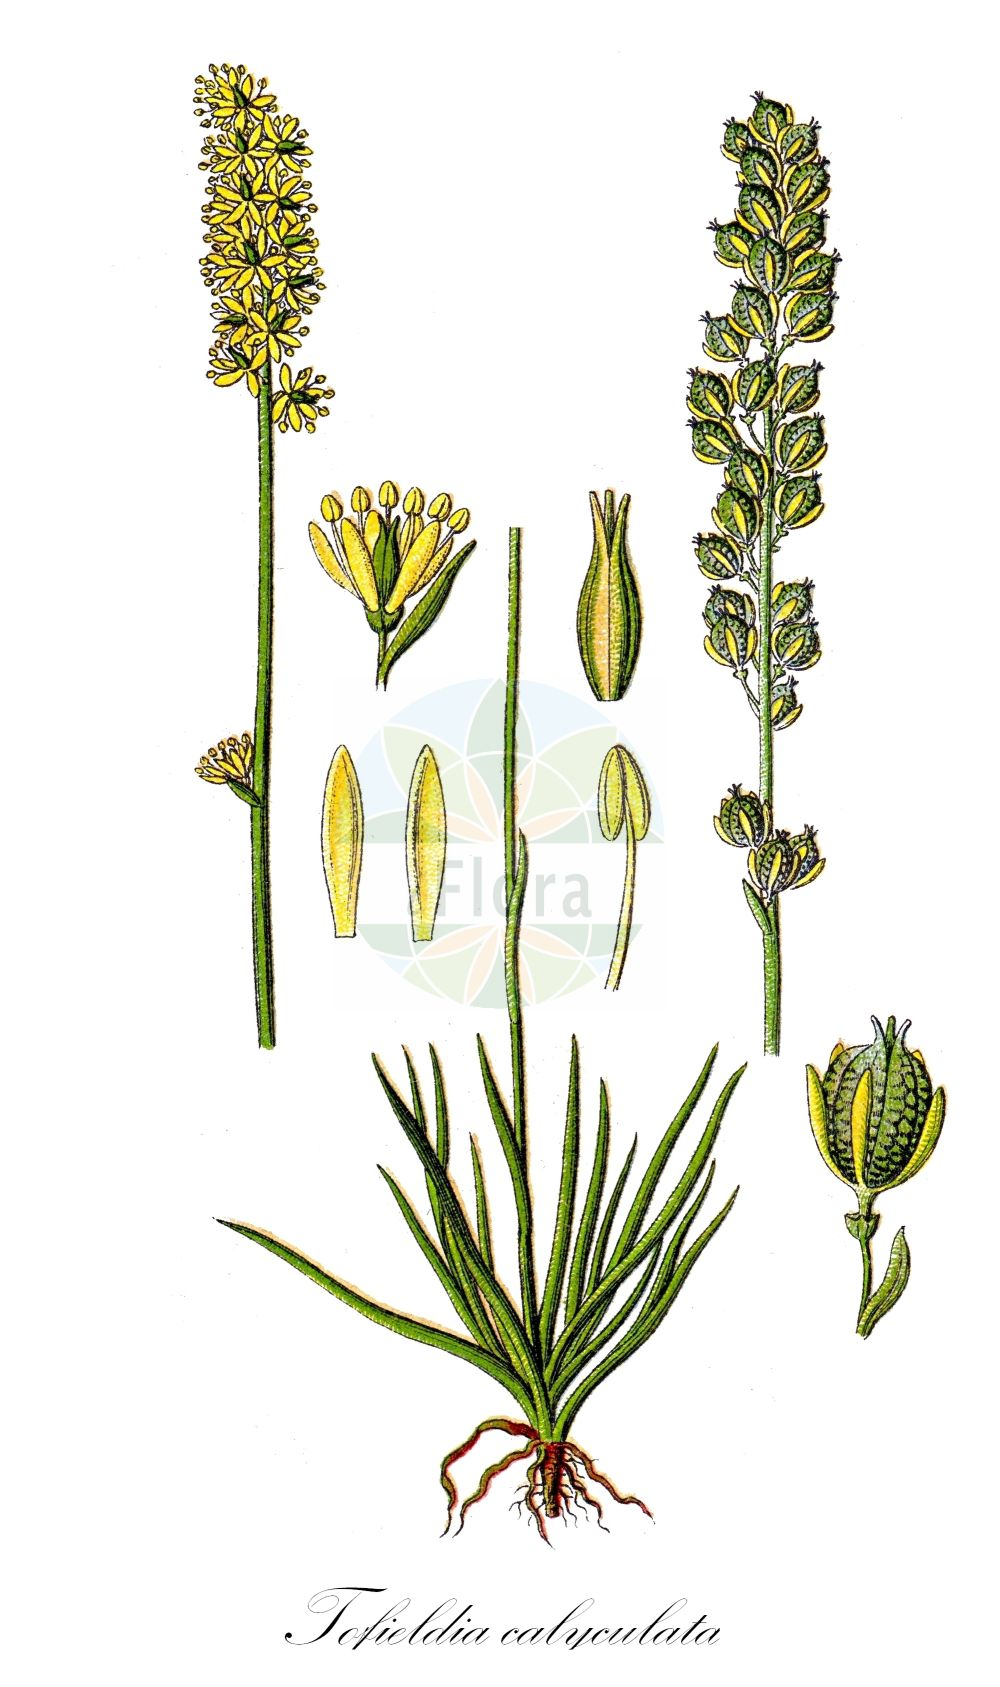 Historische Abbildung von Tofieldia calyculata (Gewoehnliche Simsenlilie - Mountain Scottish Asphodel). Das Bild zeigt Blatt, Bluete, Frucht und Same. ---- Historical Drawing of Tofieldia calyculata (Gewoehnliche Simsenlilie - Mountain Scottish Asphodel).The image is showing leaf, flower, fruit and seed.(Tofieldia calyculata,Gewoehnliche Simsenlilie,Mountain Scottish Asphodel,Anthericum calyculatum,Anthericum pseudoasphodelus,Asphodeliris calyculata,Cymba calyculata,Hebelia allemanica,Hebelia collina,Helonias anthericoides,Helonias borealis,Heriteria anthericoides,Isidrogalvia calyculata,Narthecium alpinum,Narthecium calyculatum,Narthecium iridifolium,Tofieldia allemannica,Tofieldia alpina,Tofieldia anthericoides,Tofieldia collina,Tofieldia glacialis,Tofieldia palustris,Tofieldia racemosa,Tofieldia rubra,Tofieldia stenopetala,Tofieldia,Simsenlilie,Scottish Asphodel,Tofieldiaceae,Simsenliliengewaechse,Scottish Asphodel family,Blatt,Bluete,Frucht,Same,leaf,flower,fruit,seed,Sturm (1796f))